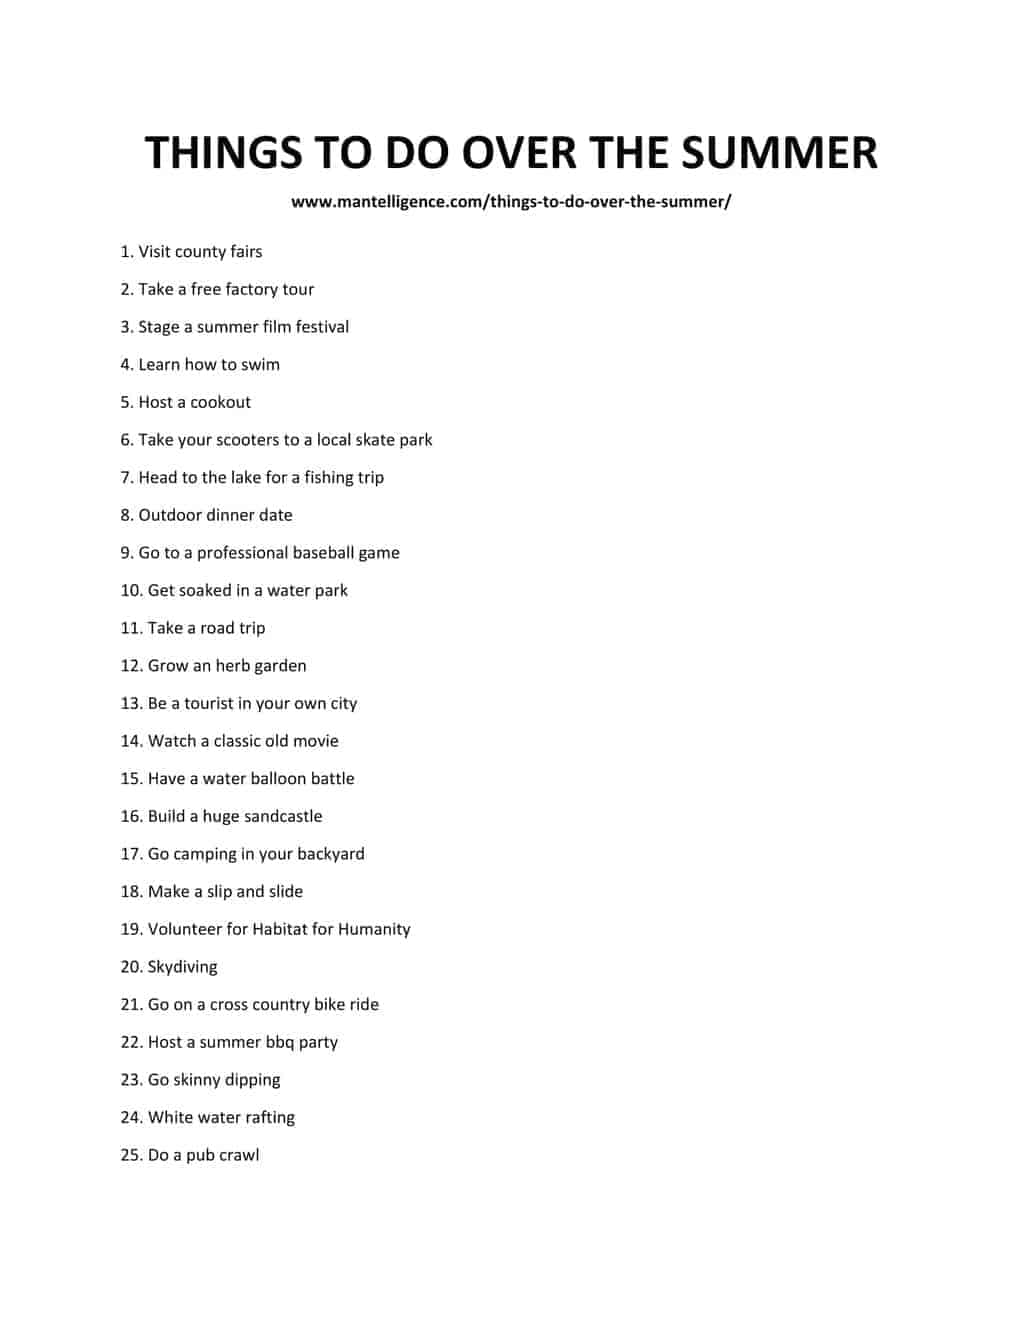 THINGS_TO_DO_OVER_THE_SUMMER-1[1]